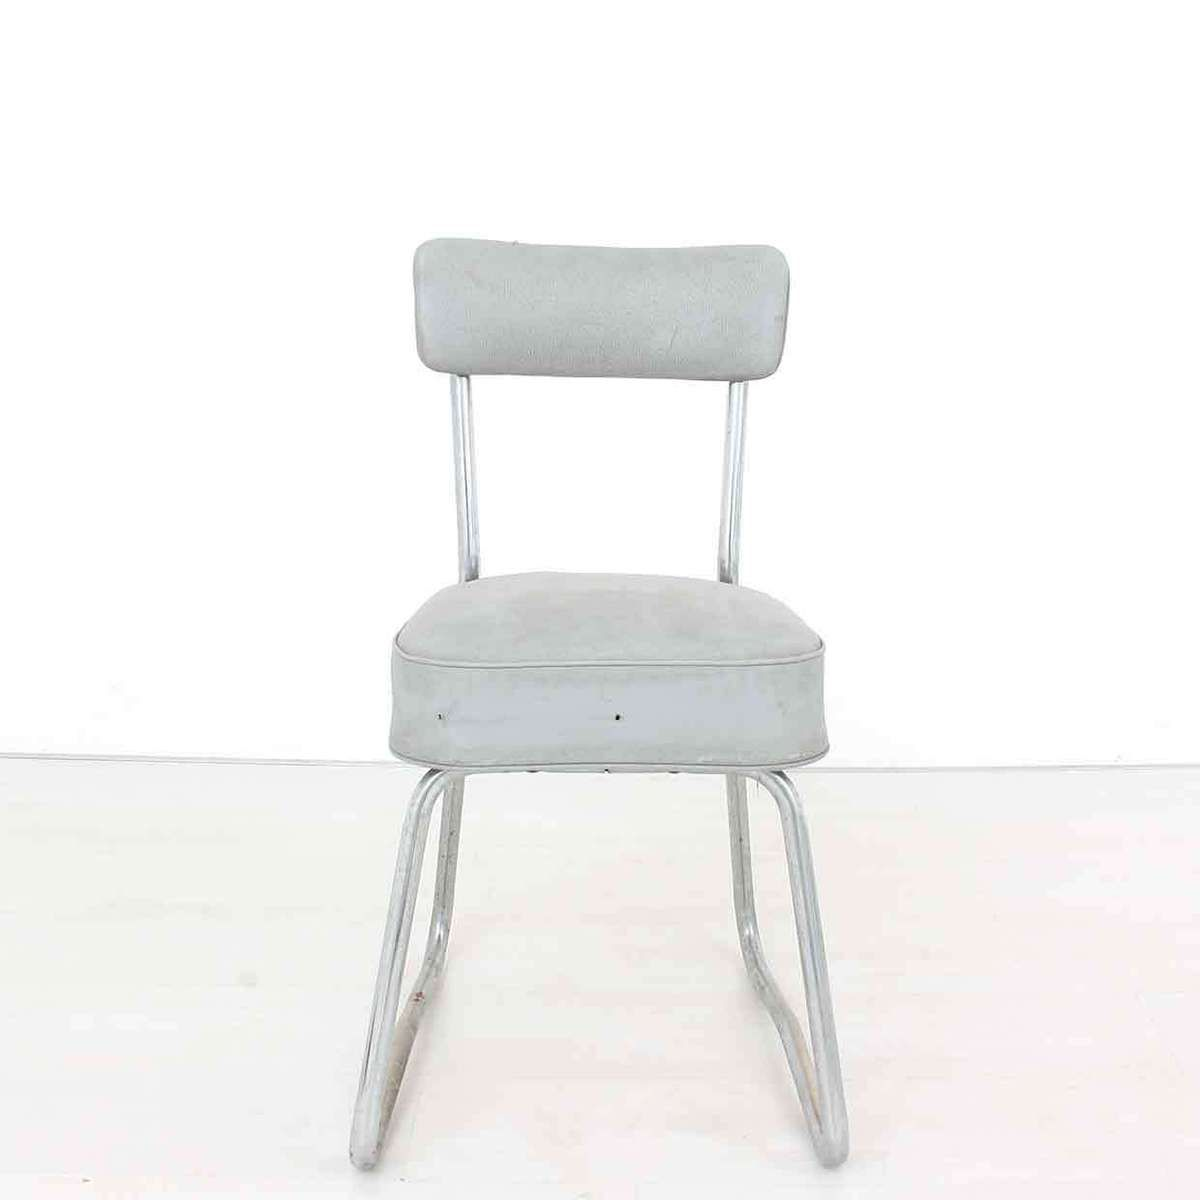 Industrial Design Chair